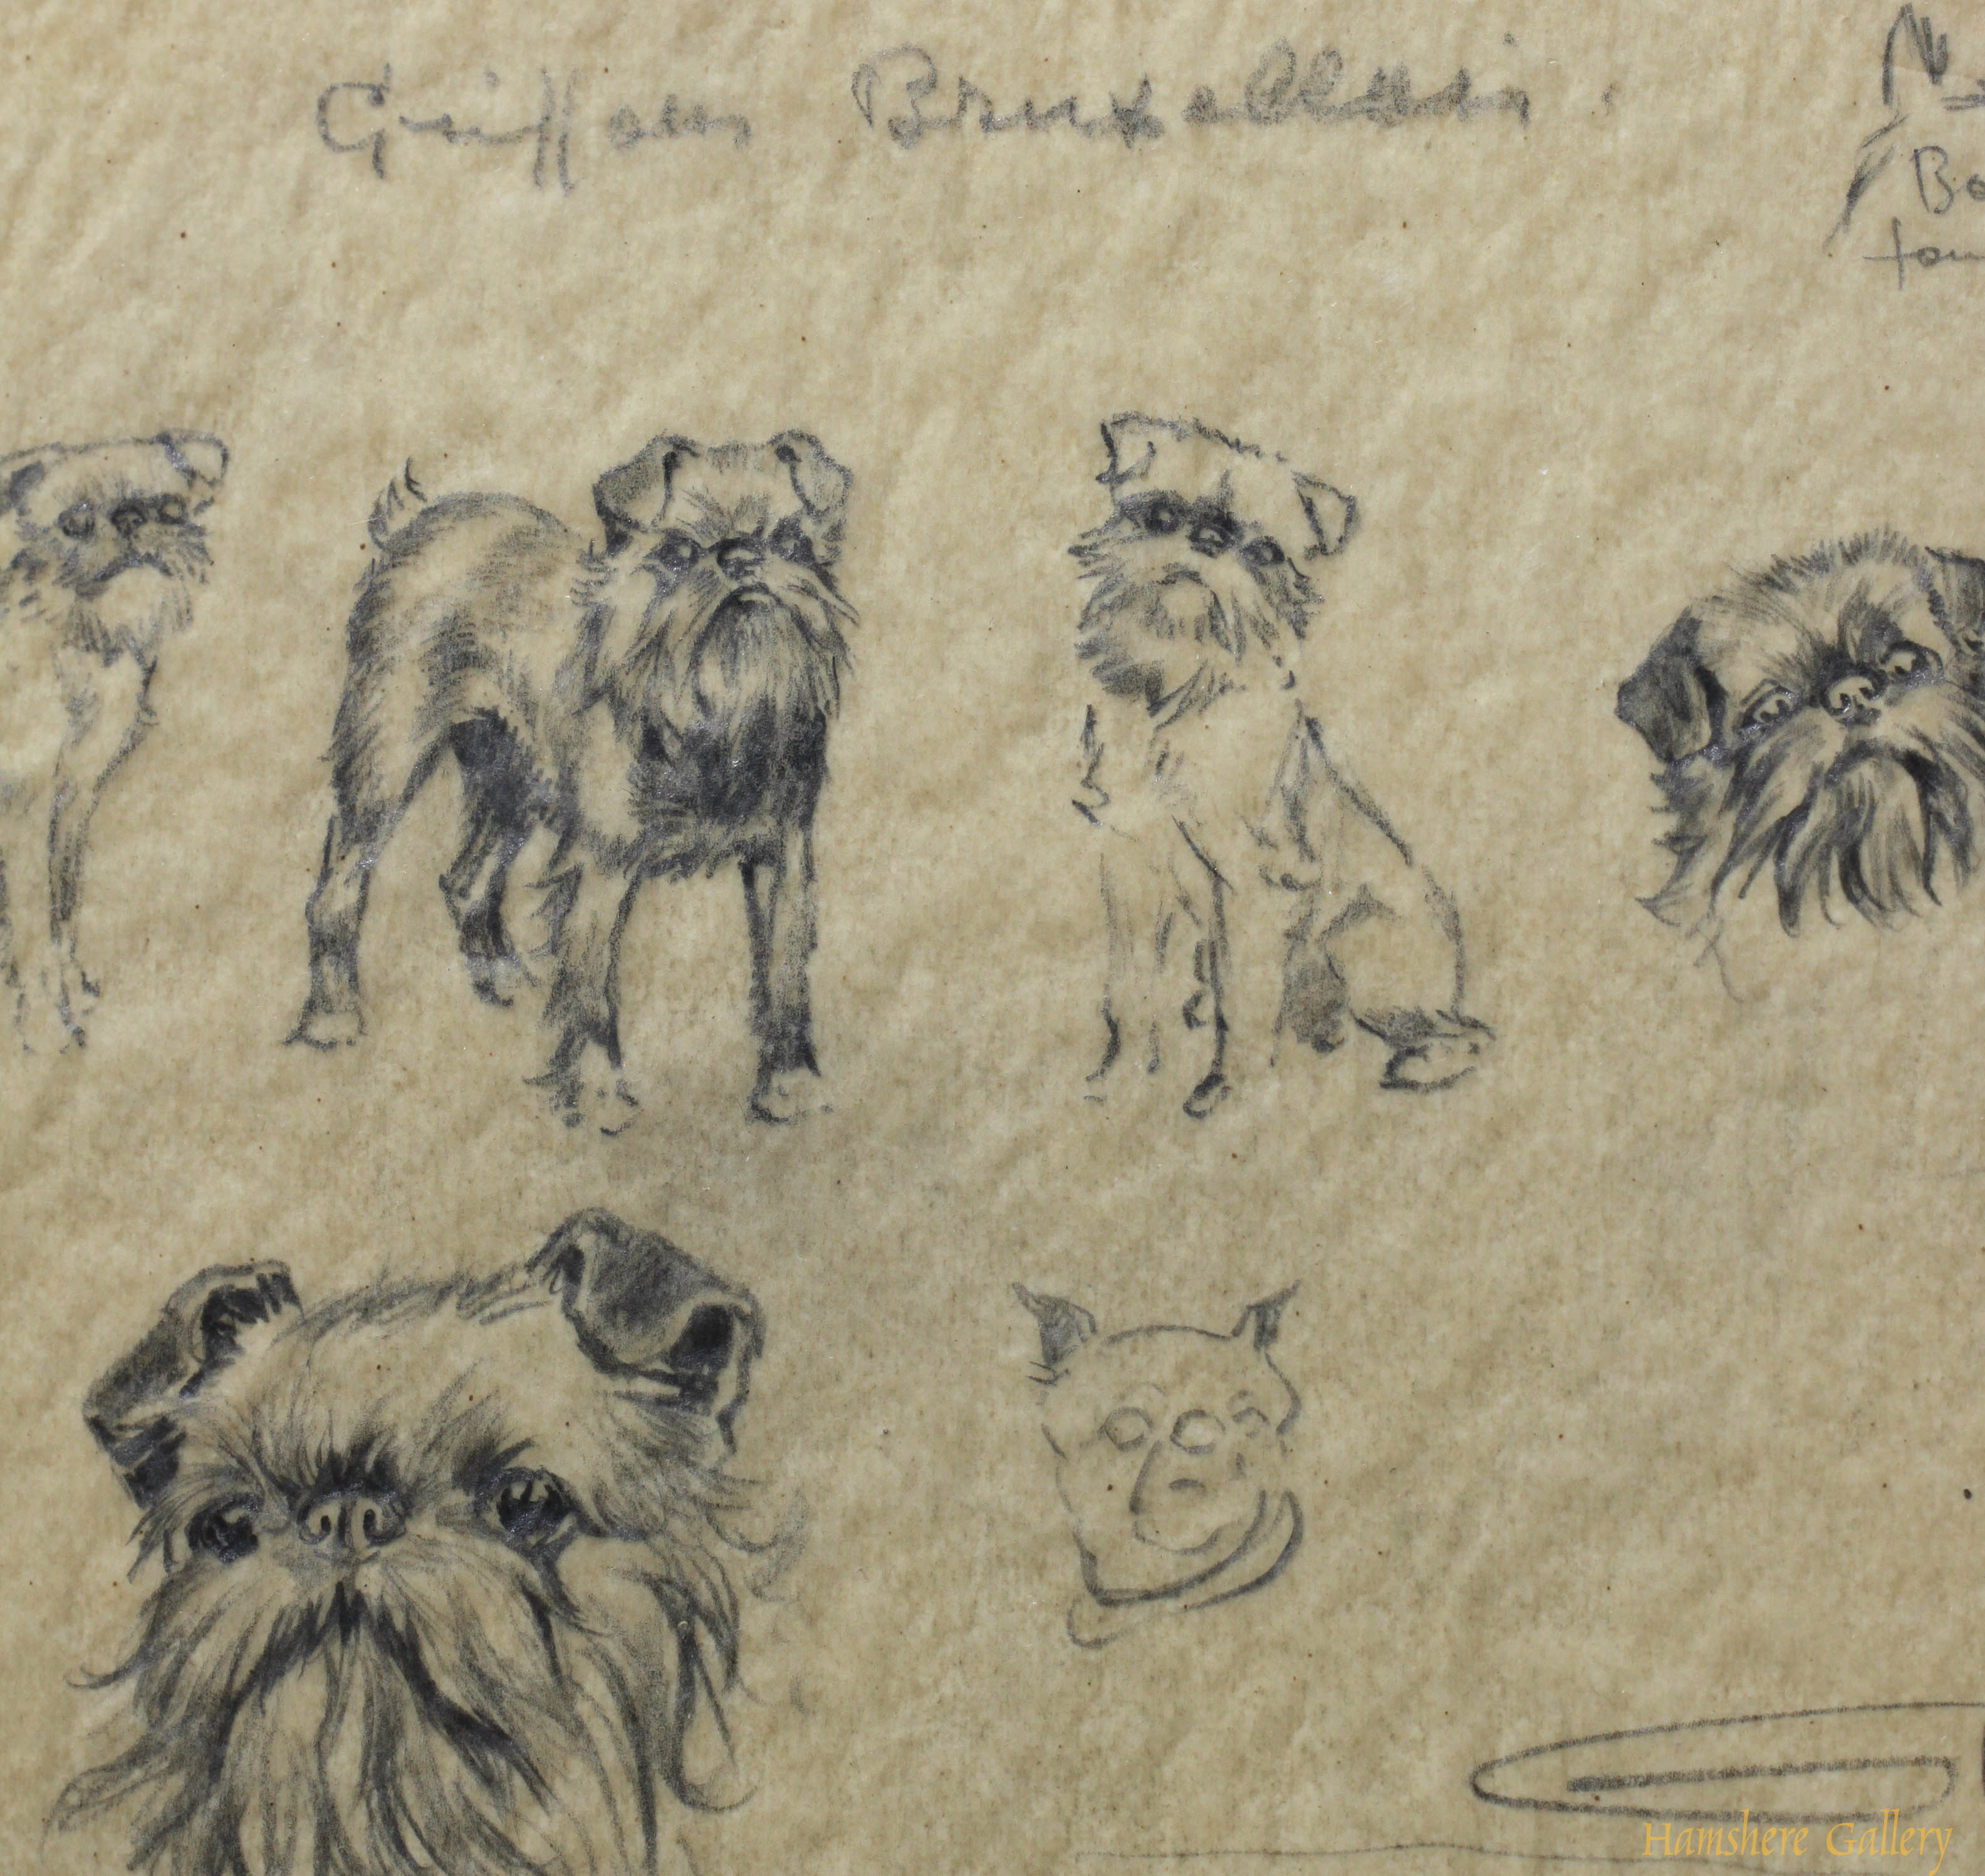 Click for larger image: Griffon Bruxellois pencil studies by Borris O�Klein / Jean Herblet - Griffon Bruxellois pencil studies by Borris O�Klein / Jean Herblet